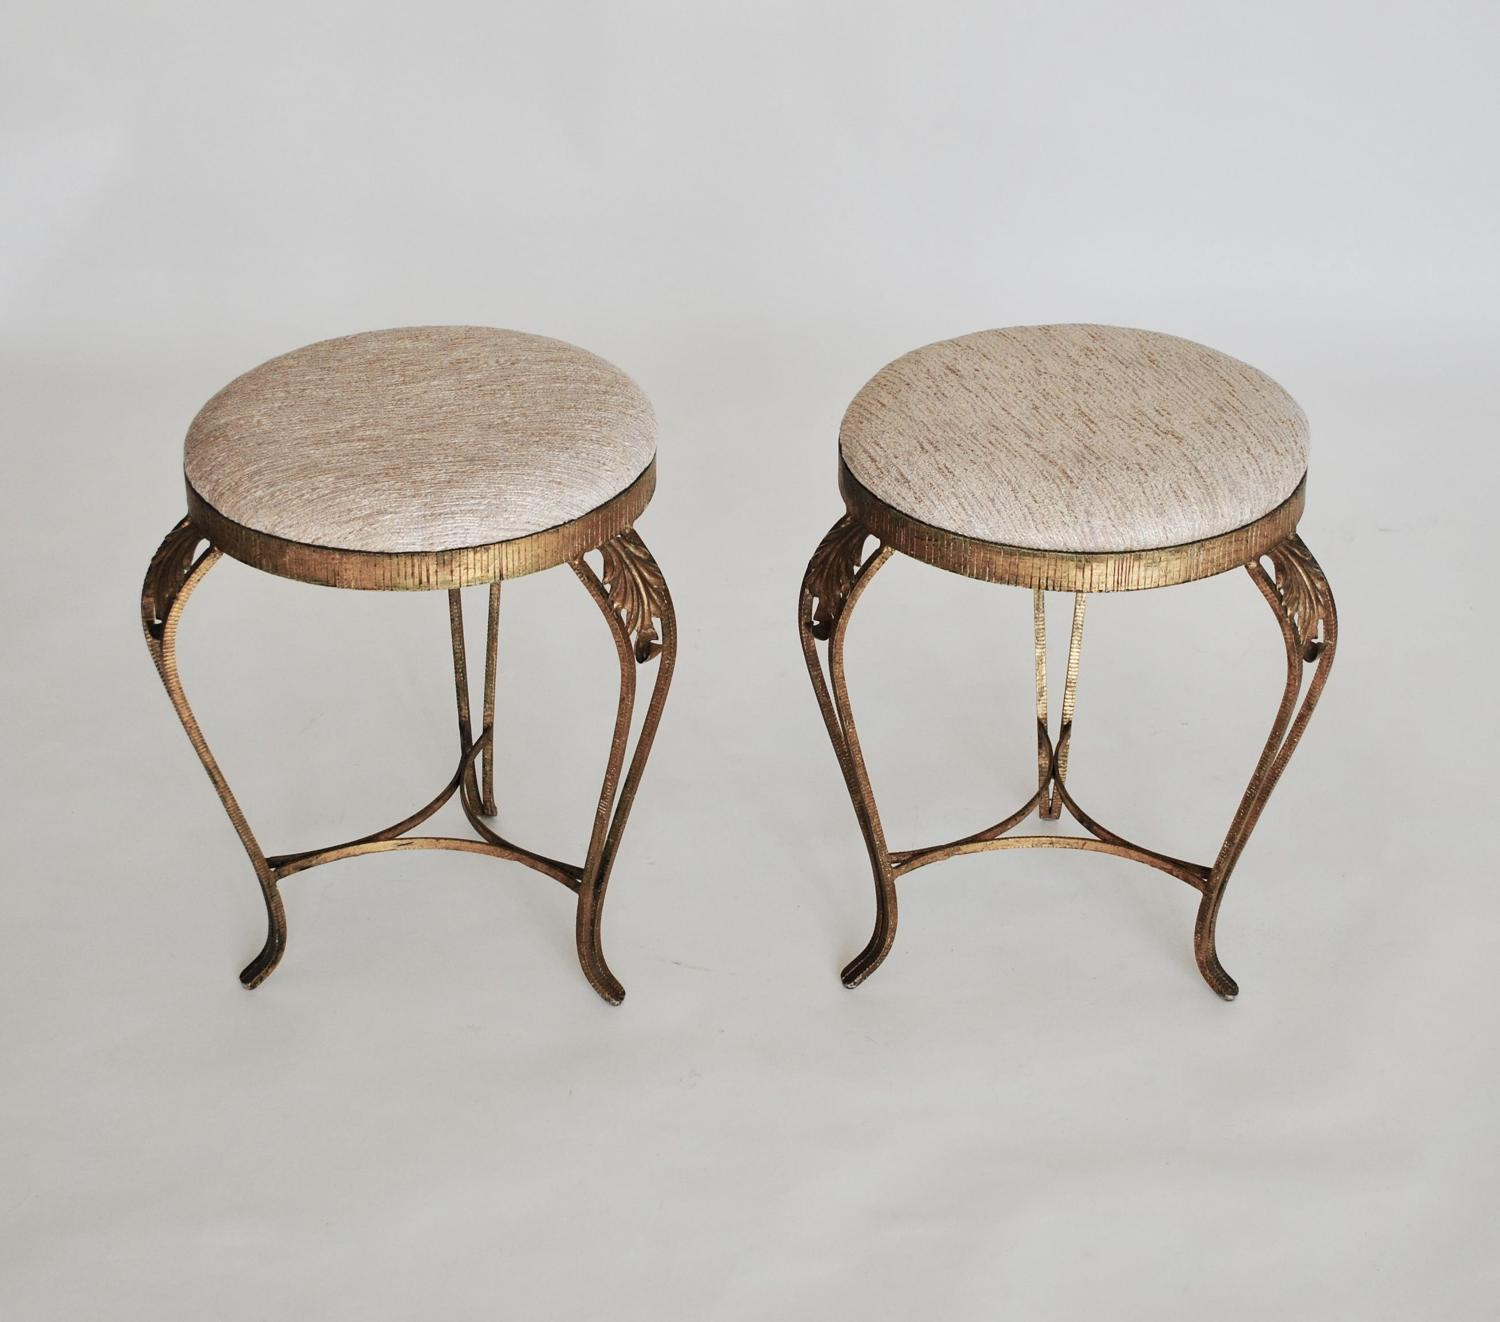 Pair of Gilt Metal Stools